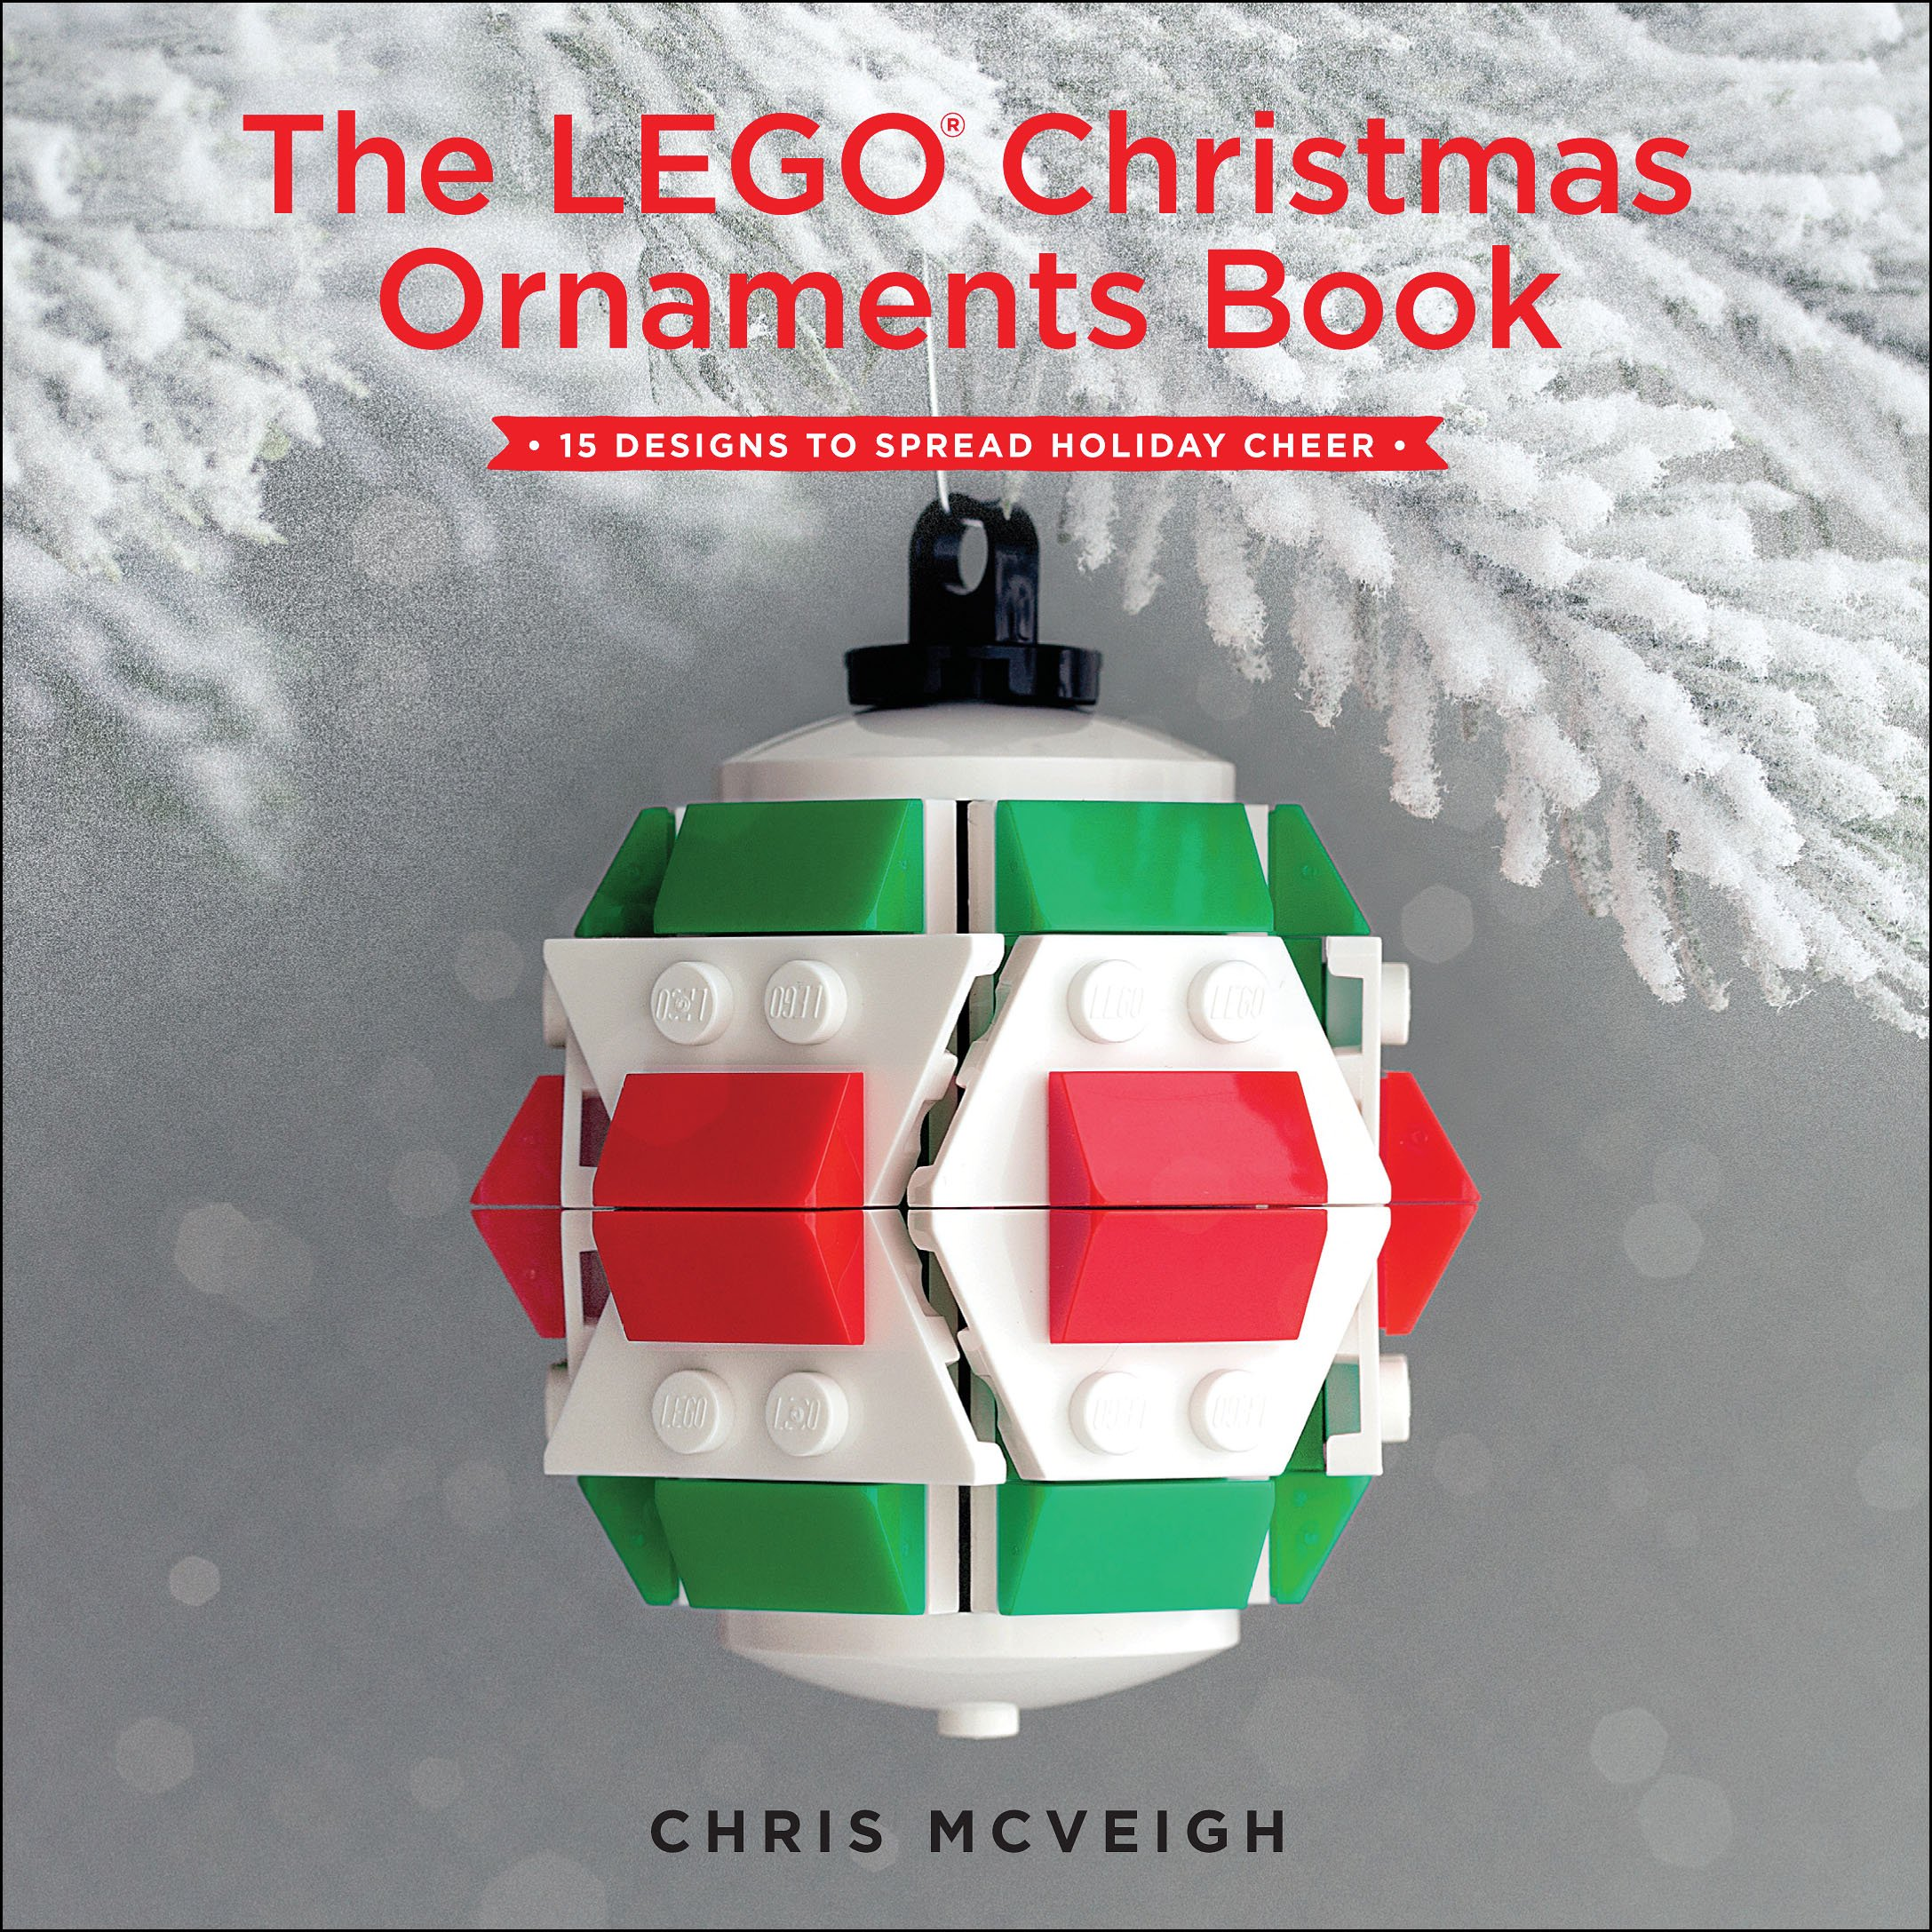 Christmas name ornaments - A Few Days Ago I Received A New Review Copy Of The Lego Christmas Ornaments Book 15 Designs To Spread Holiday Cheer By Chris Mcveigh From No Starch Press